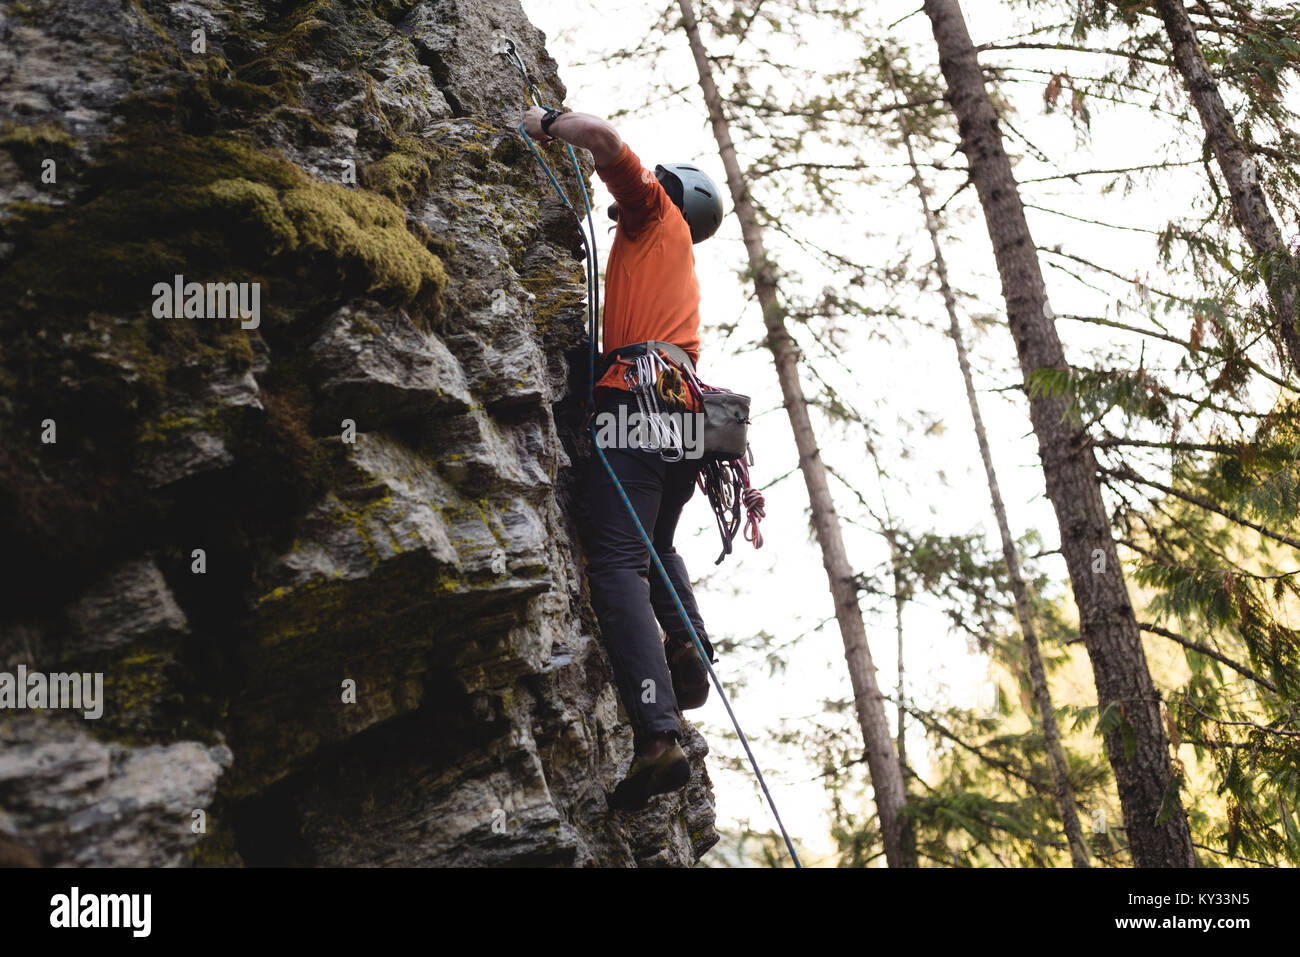 Rock climber climbing the rocky cliff - Stock Image